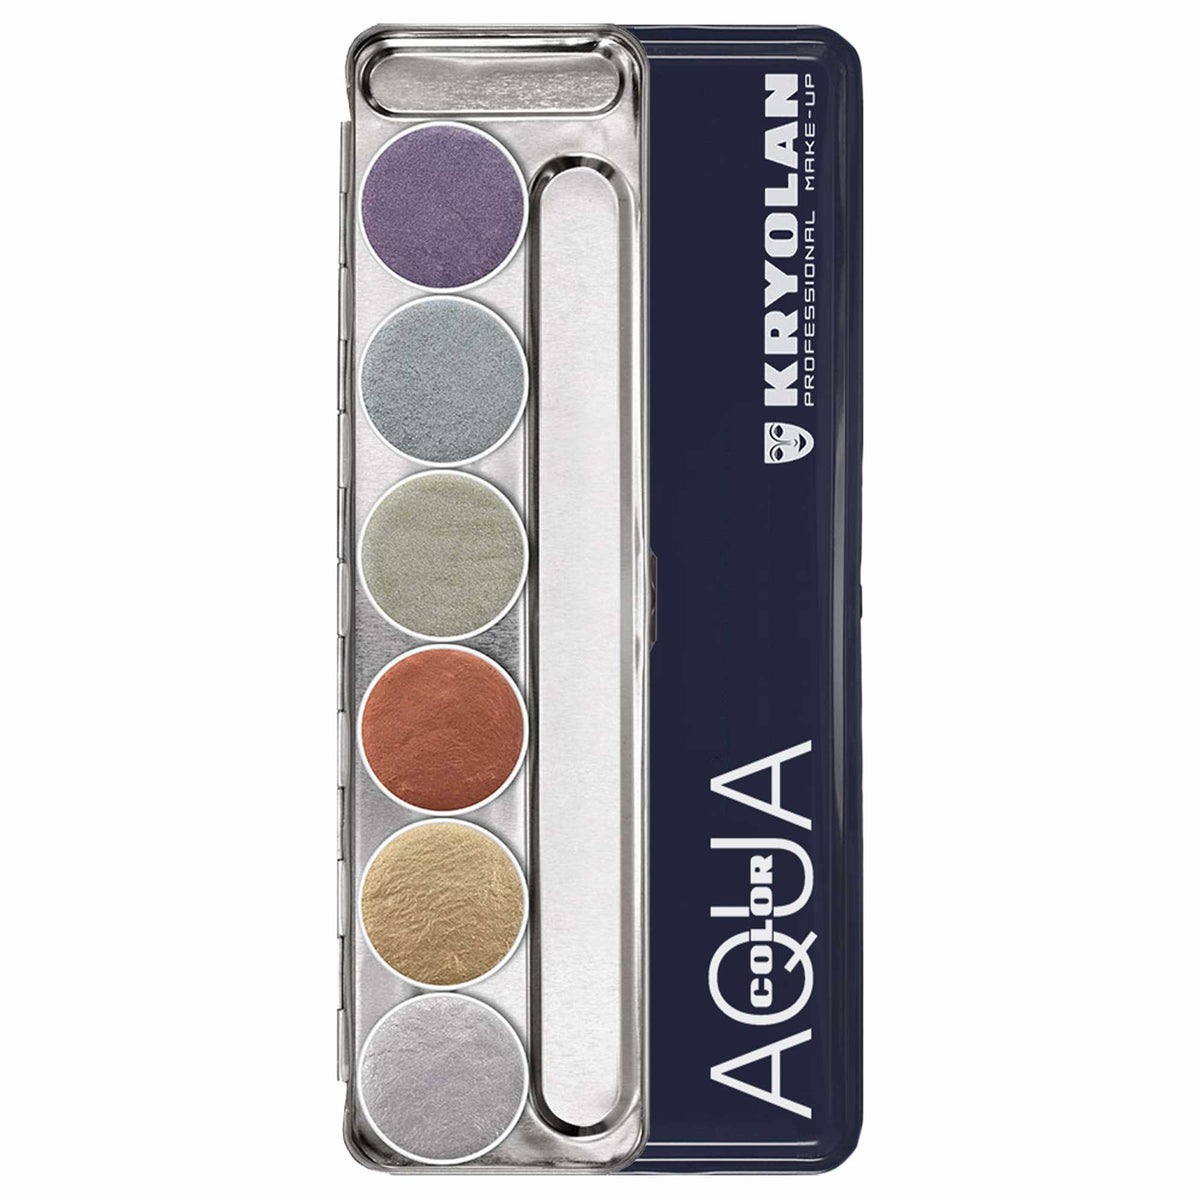 Kryolan AQUACOLOR Metallic 6 Palette - Face & Body Paint